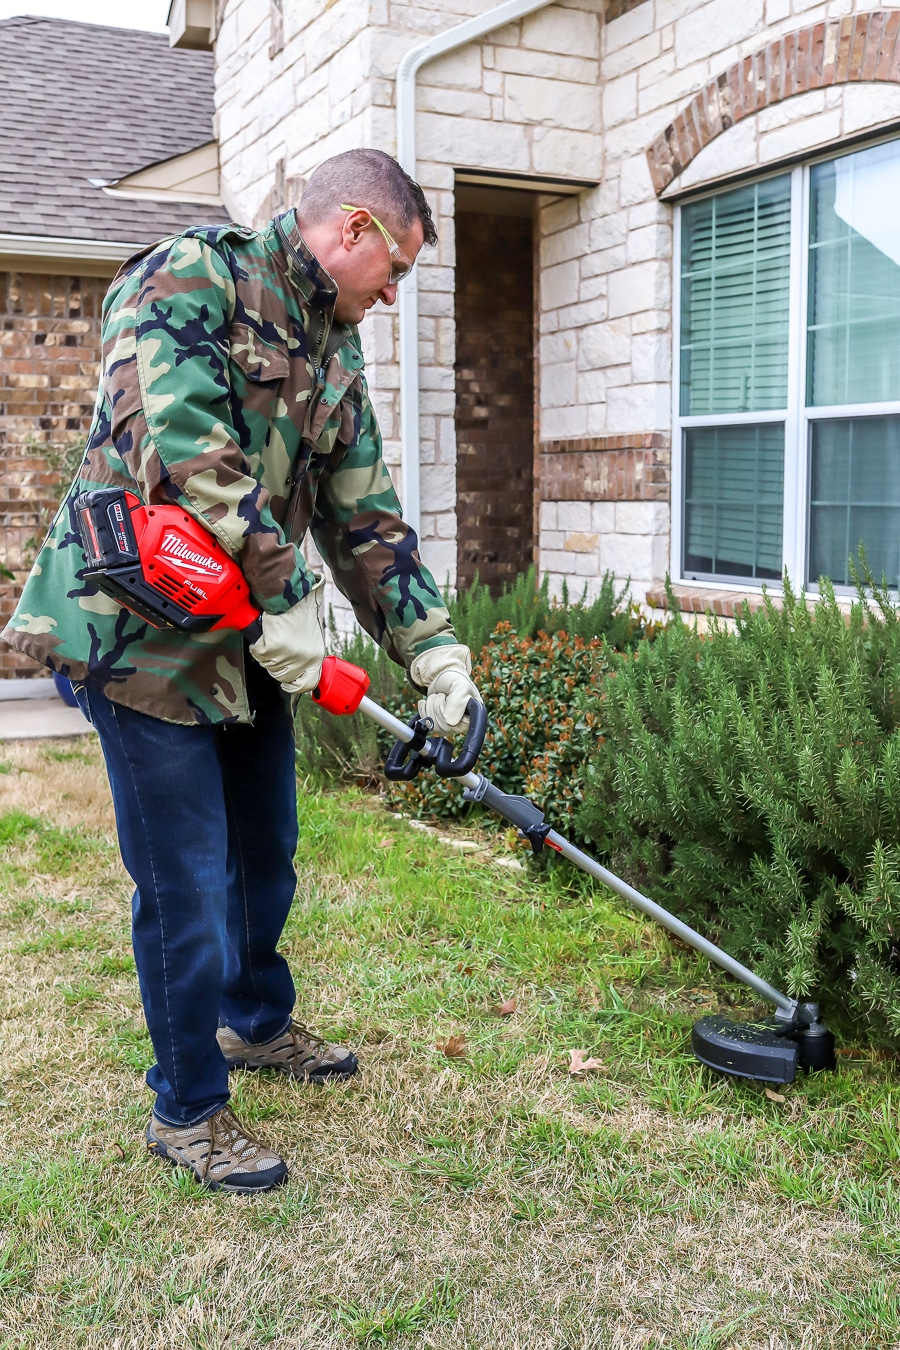 Tool Review of the Milwaukee Cordless String Trimmer